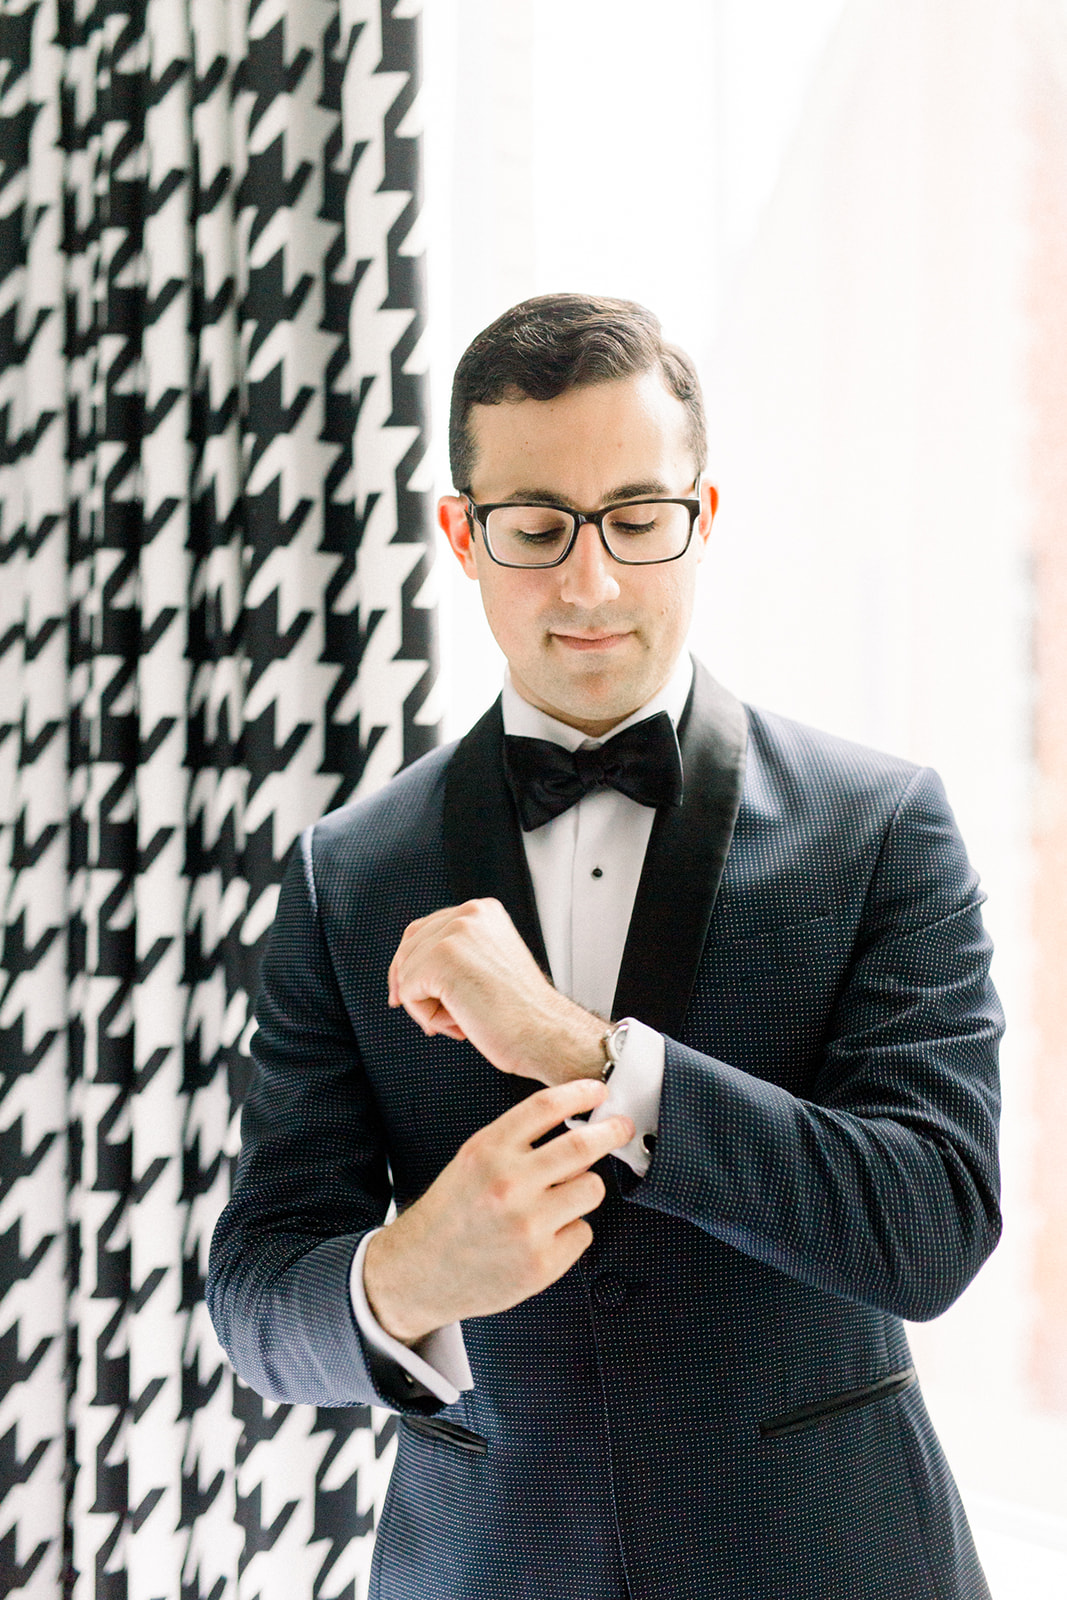 Groom dressed in modern tuxedo for Pittsburgh wedding held at Hotel Monaco. See more beautiful details of this simple, yet stunning wedding at exhale-events.com!